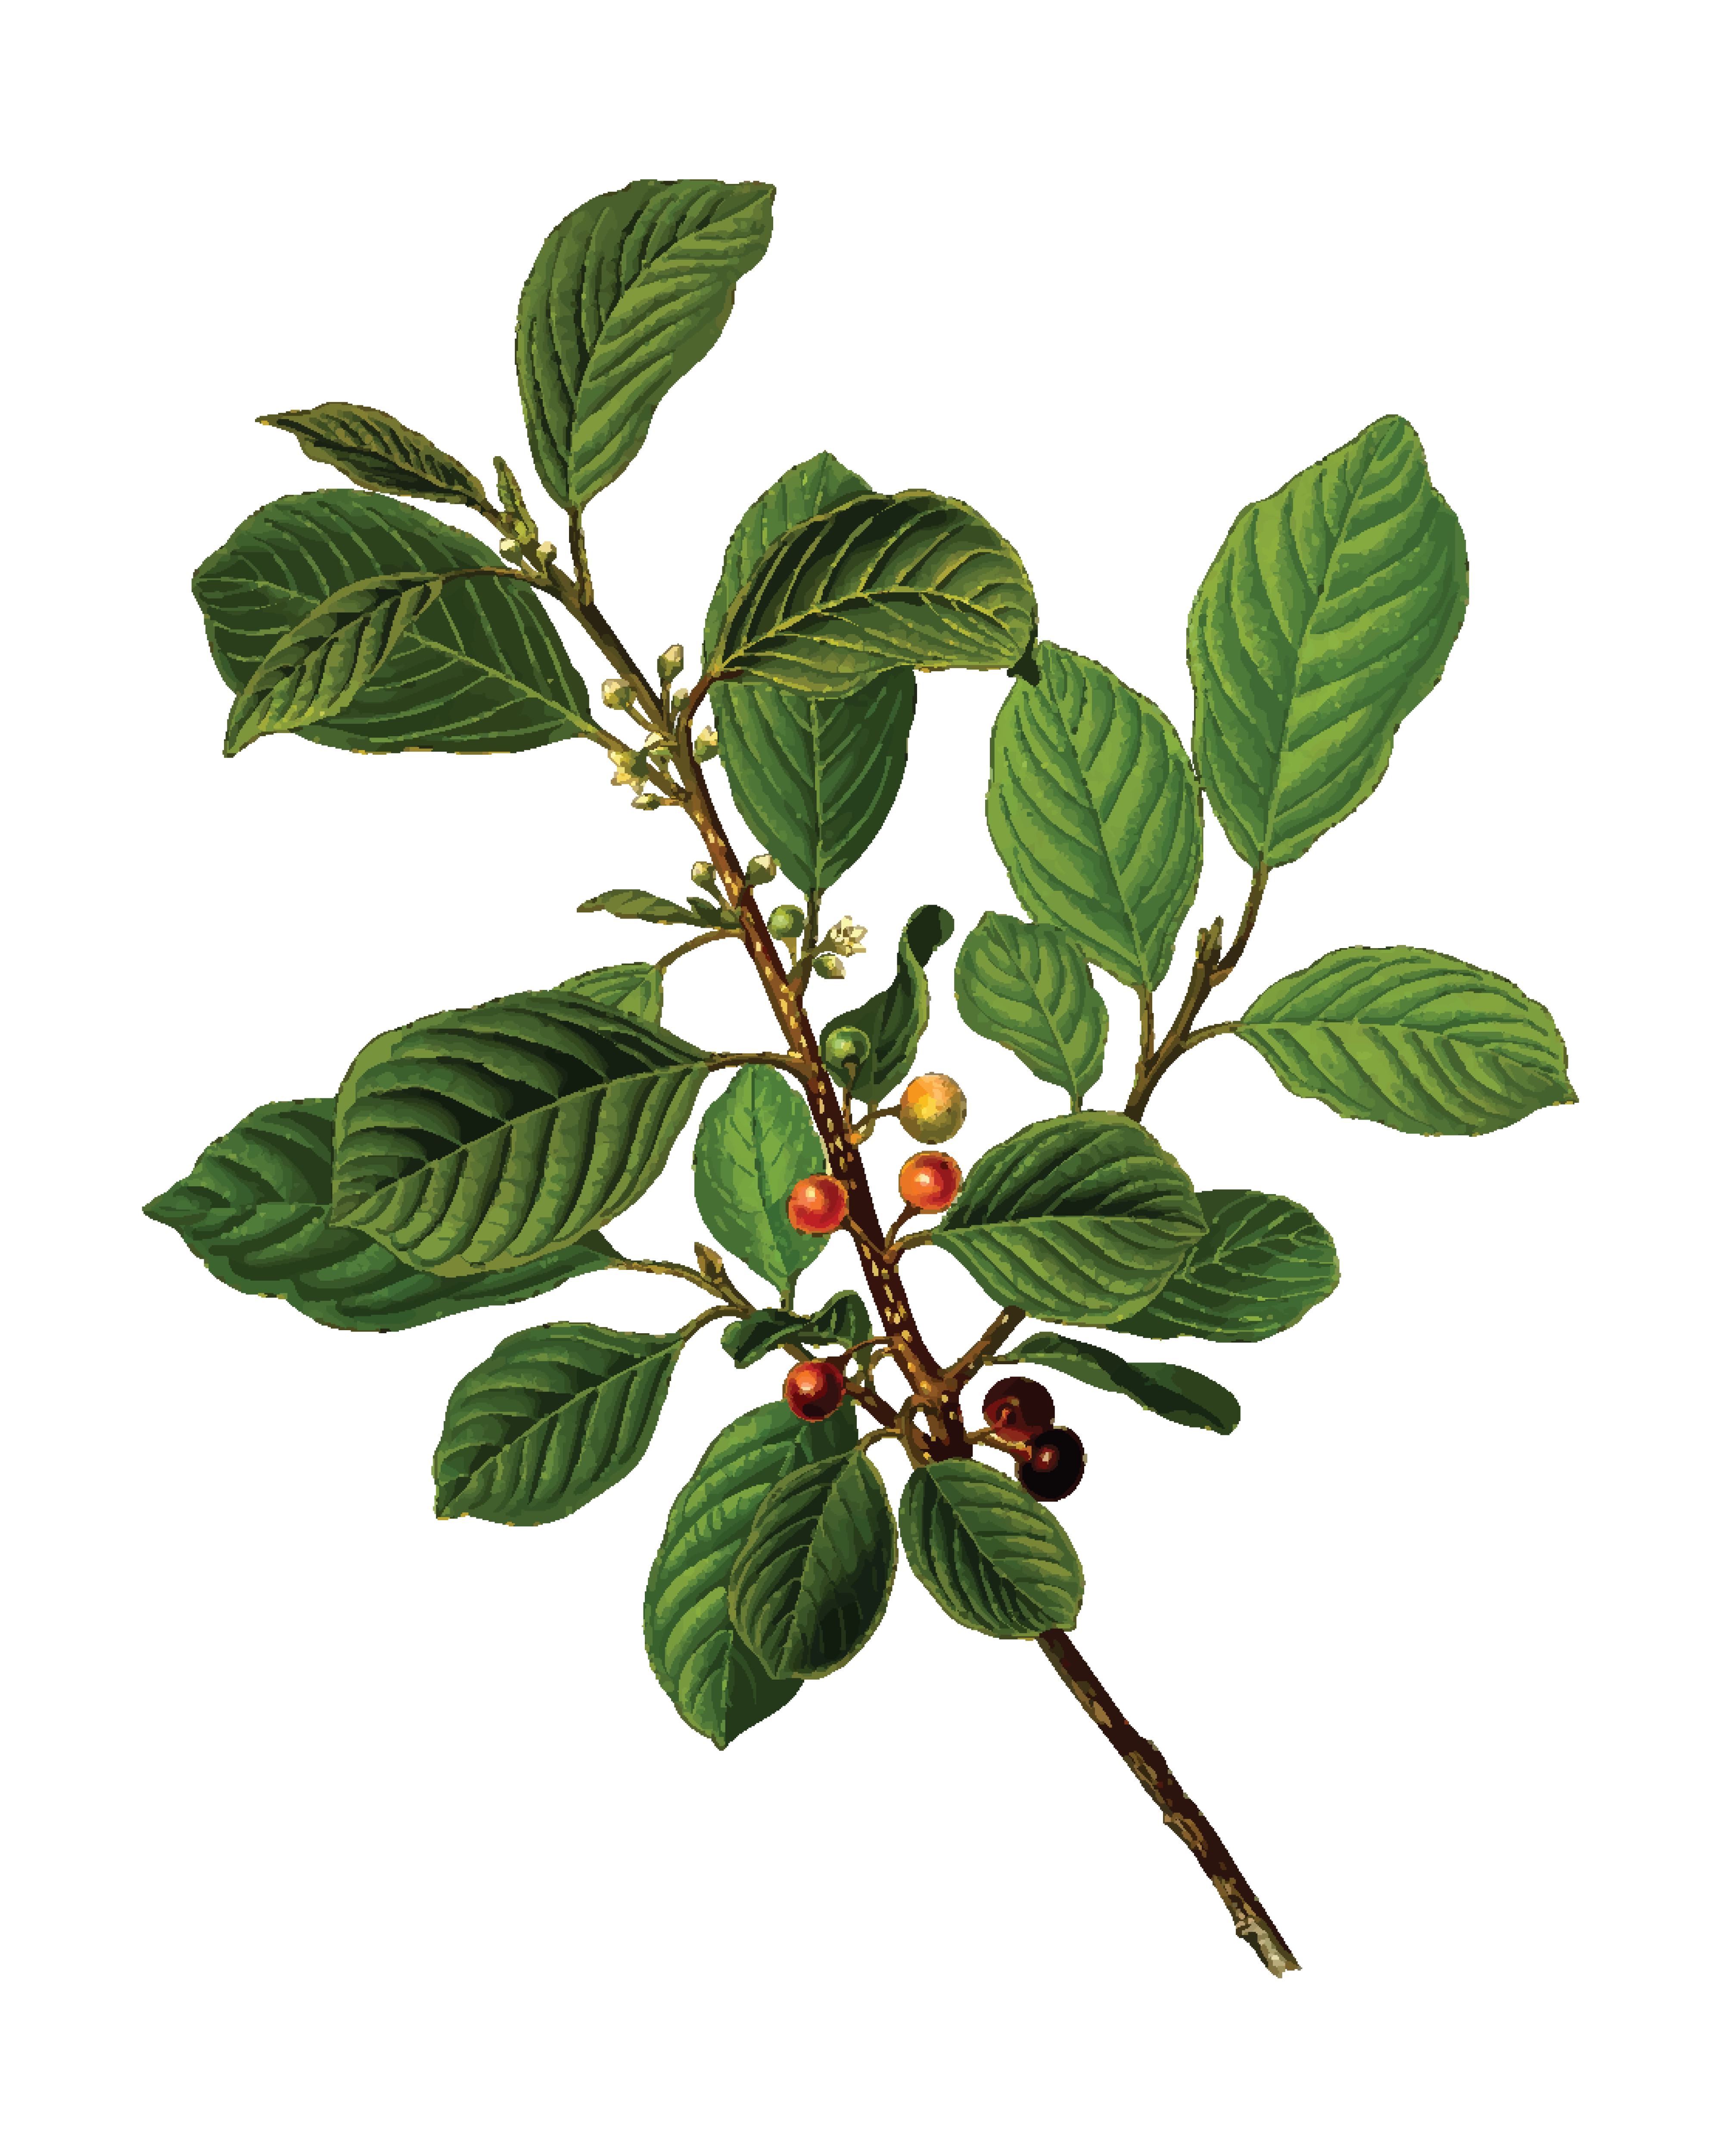 Free Clipart Of An alder tree branch